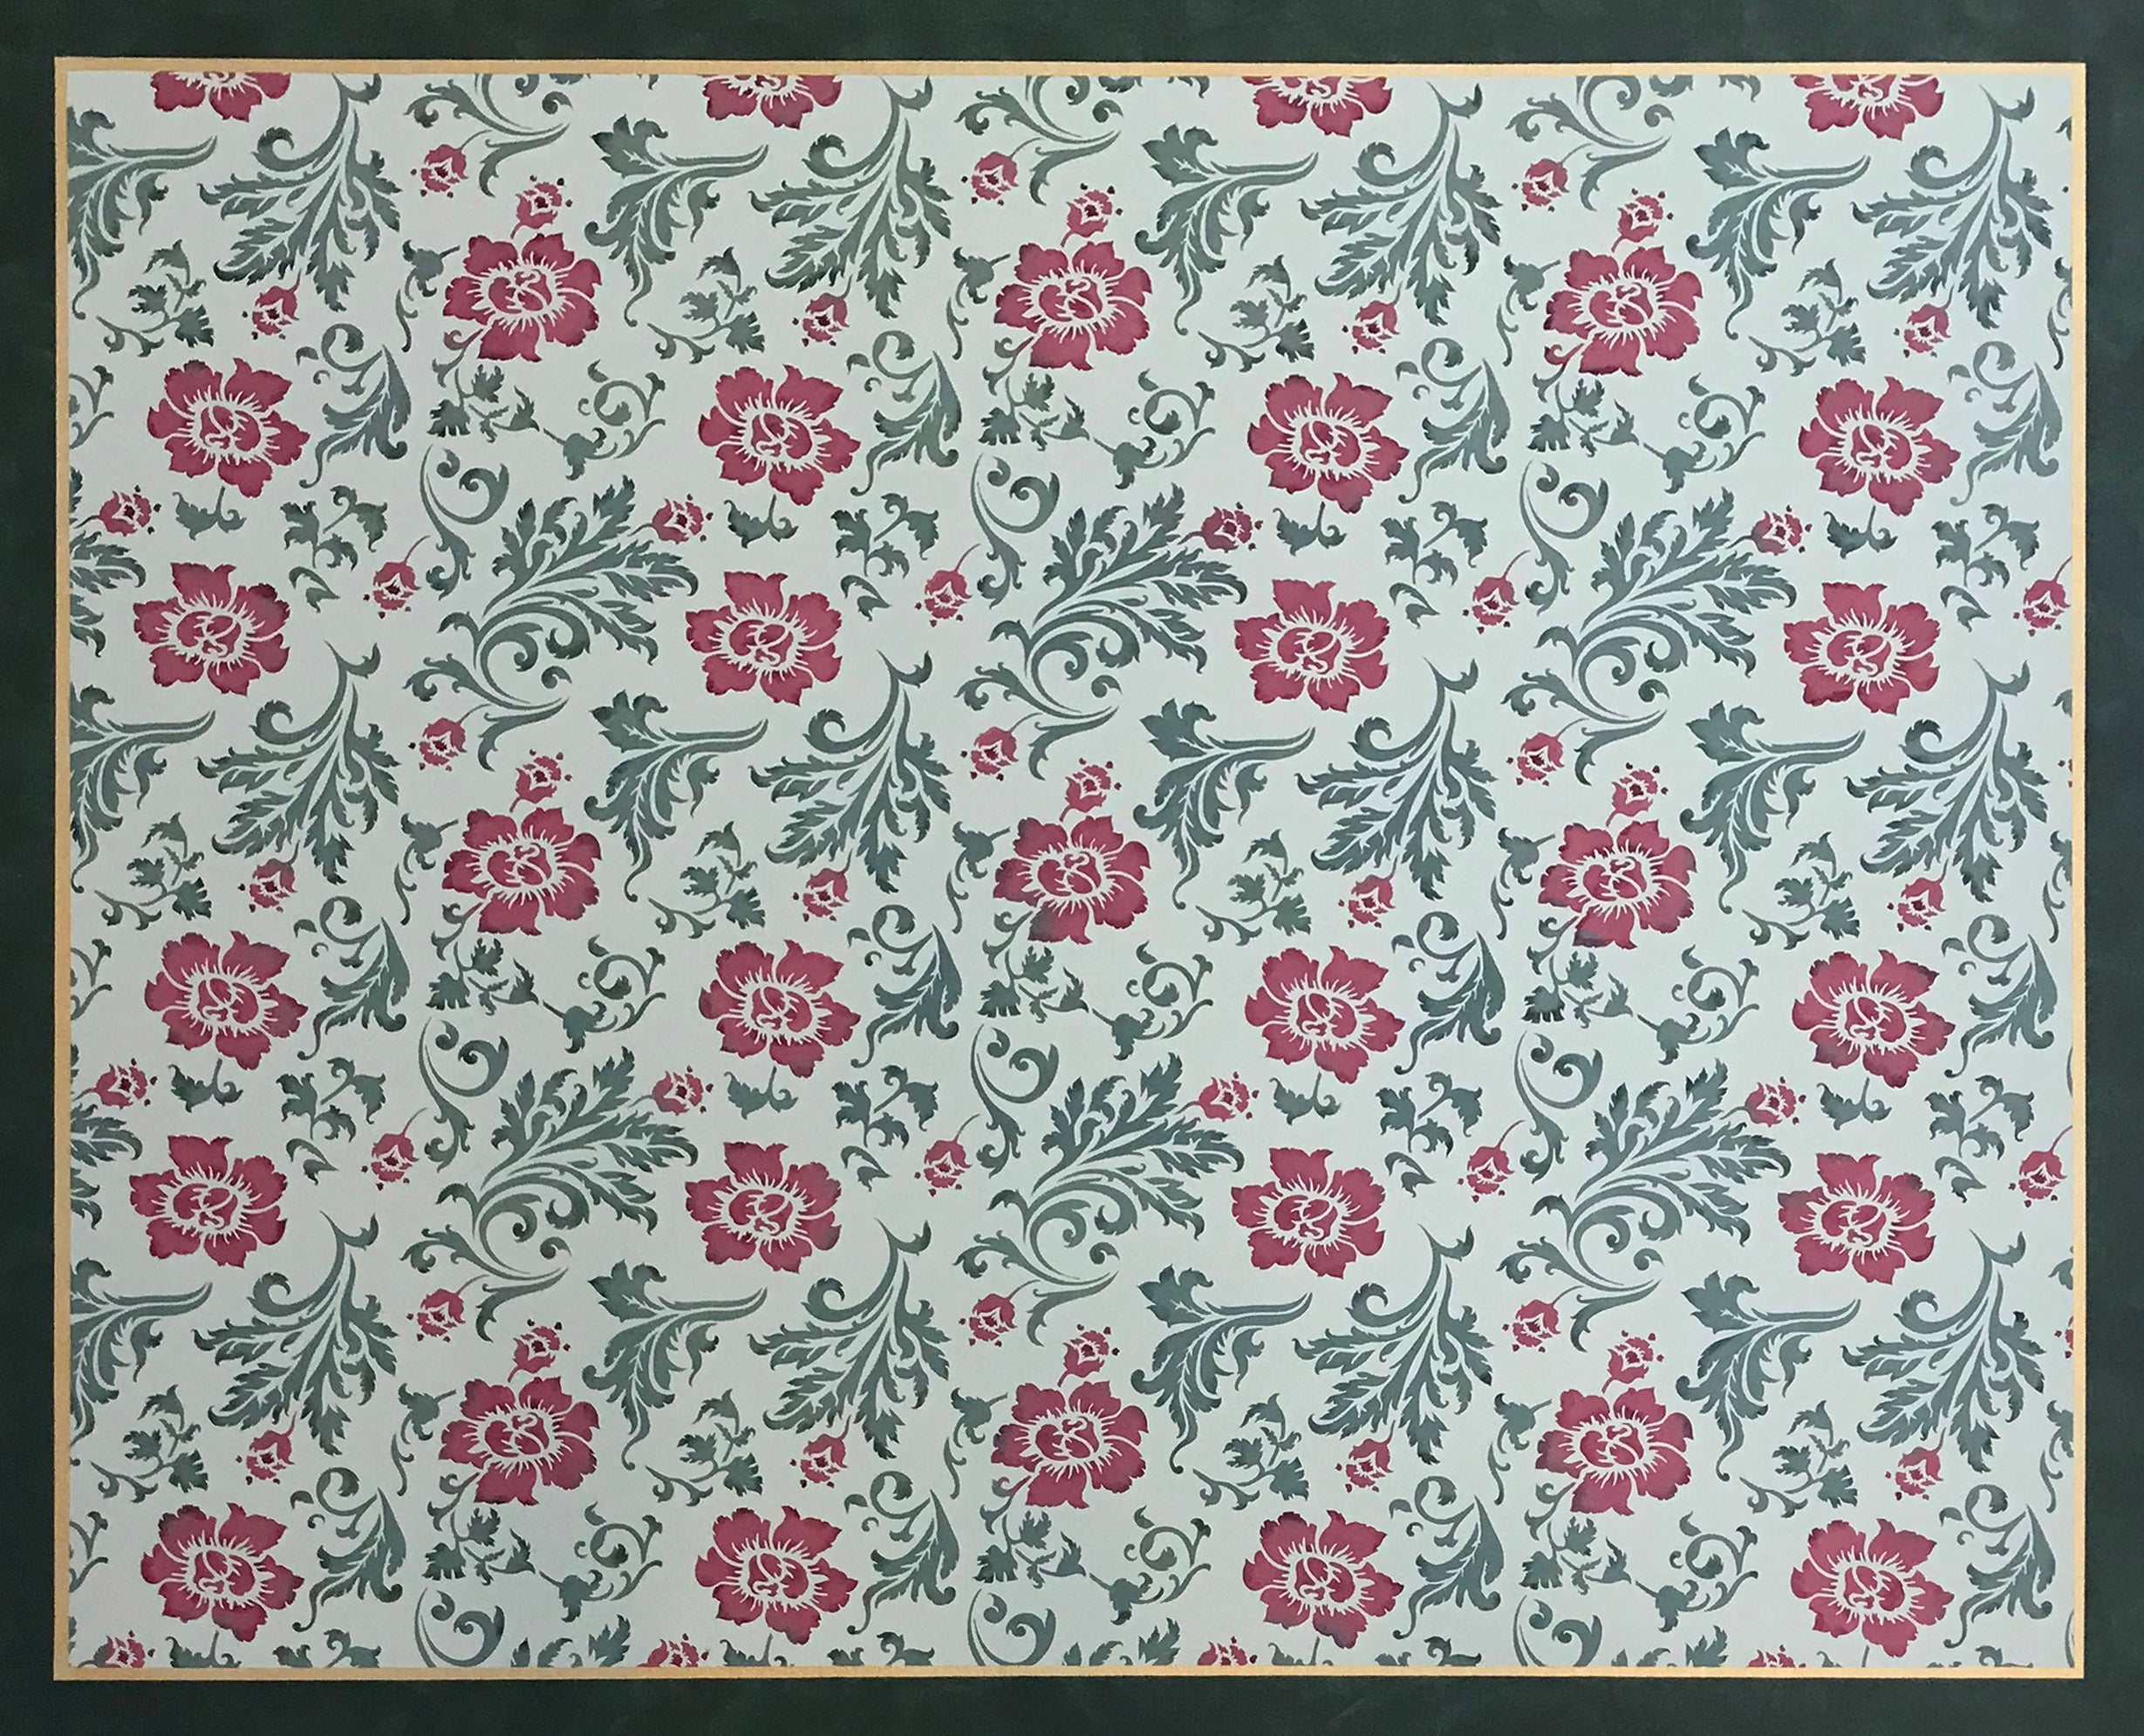 Full image of this floorcloth based on a lovely all-over floral pattern that is organic in its execution, creating a carpet of blooms, buds, and leaves.